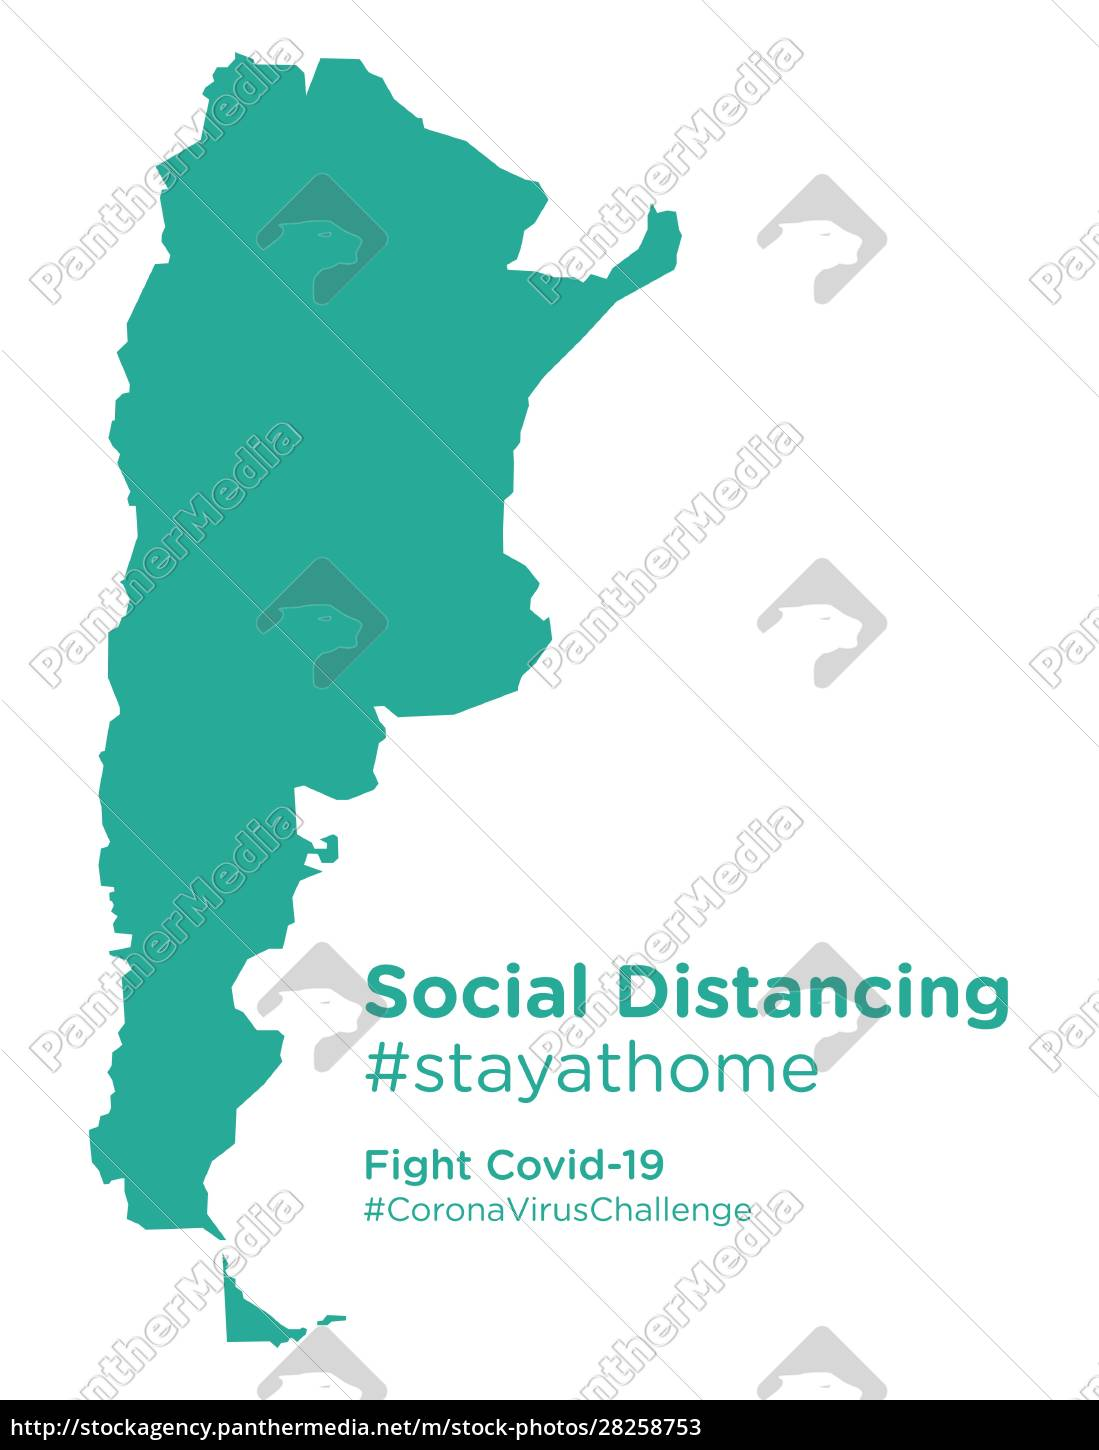 argentina, map, with, social, distancing, #stayathome - 28258753